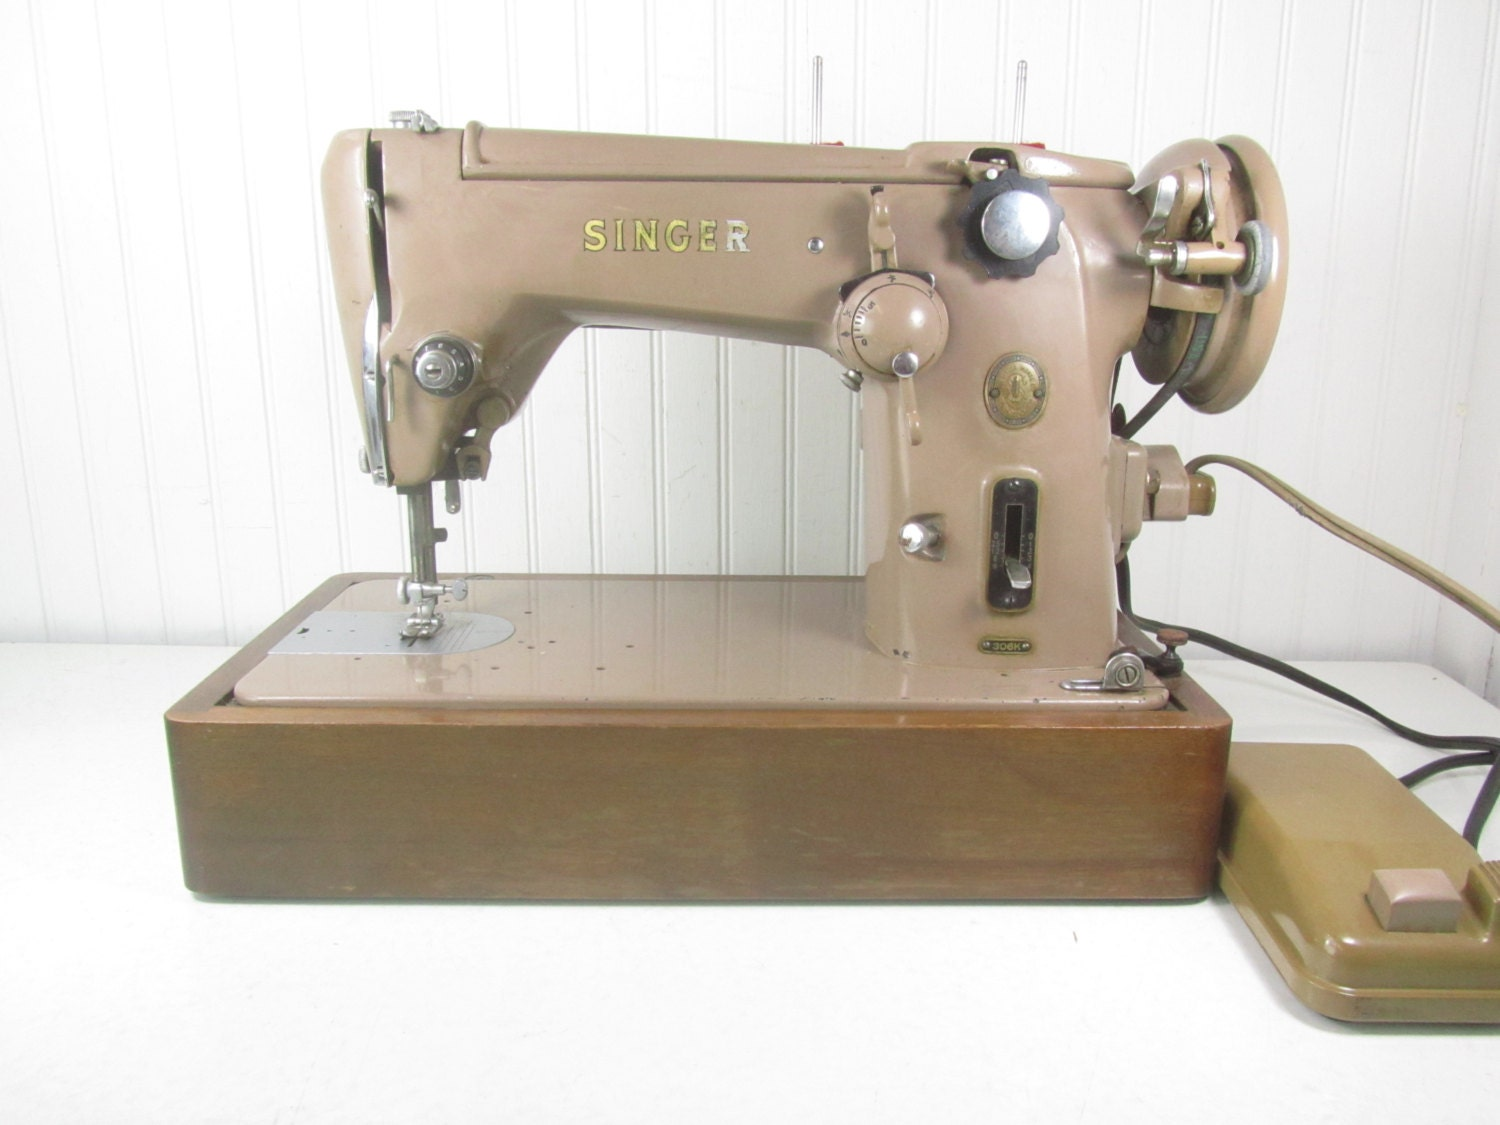 Vintage Singer Sewing Machine Tan Sewing Machine The Singer